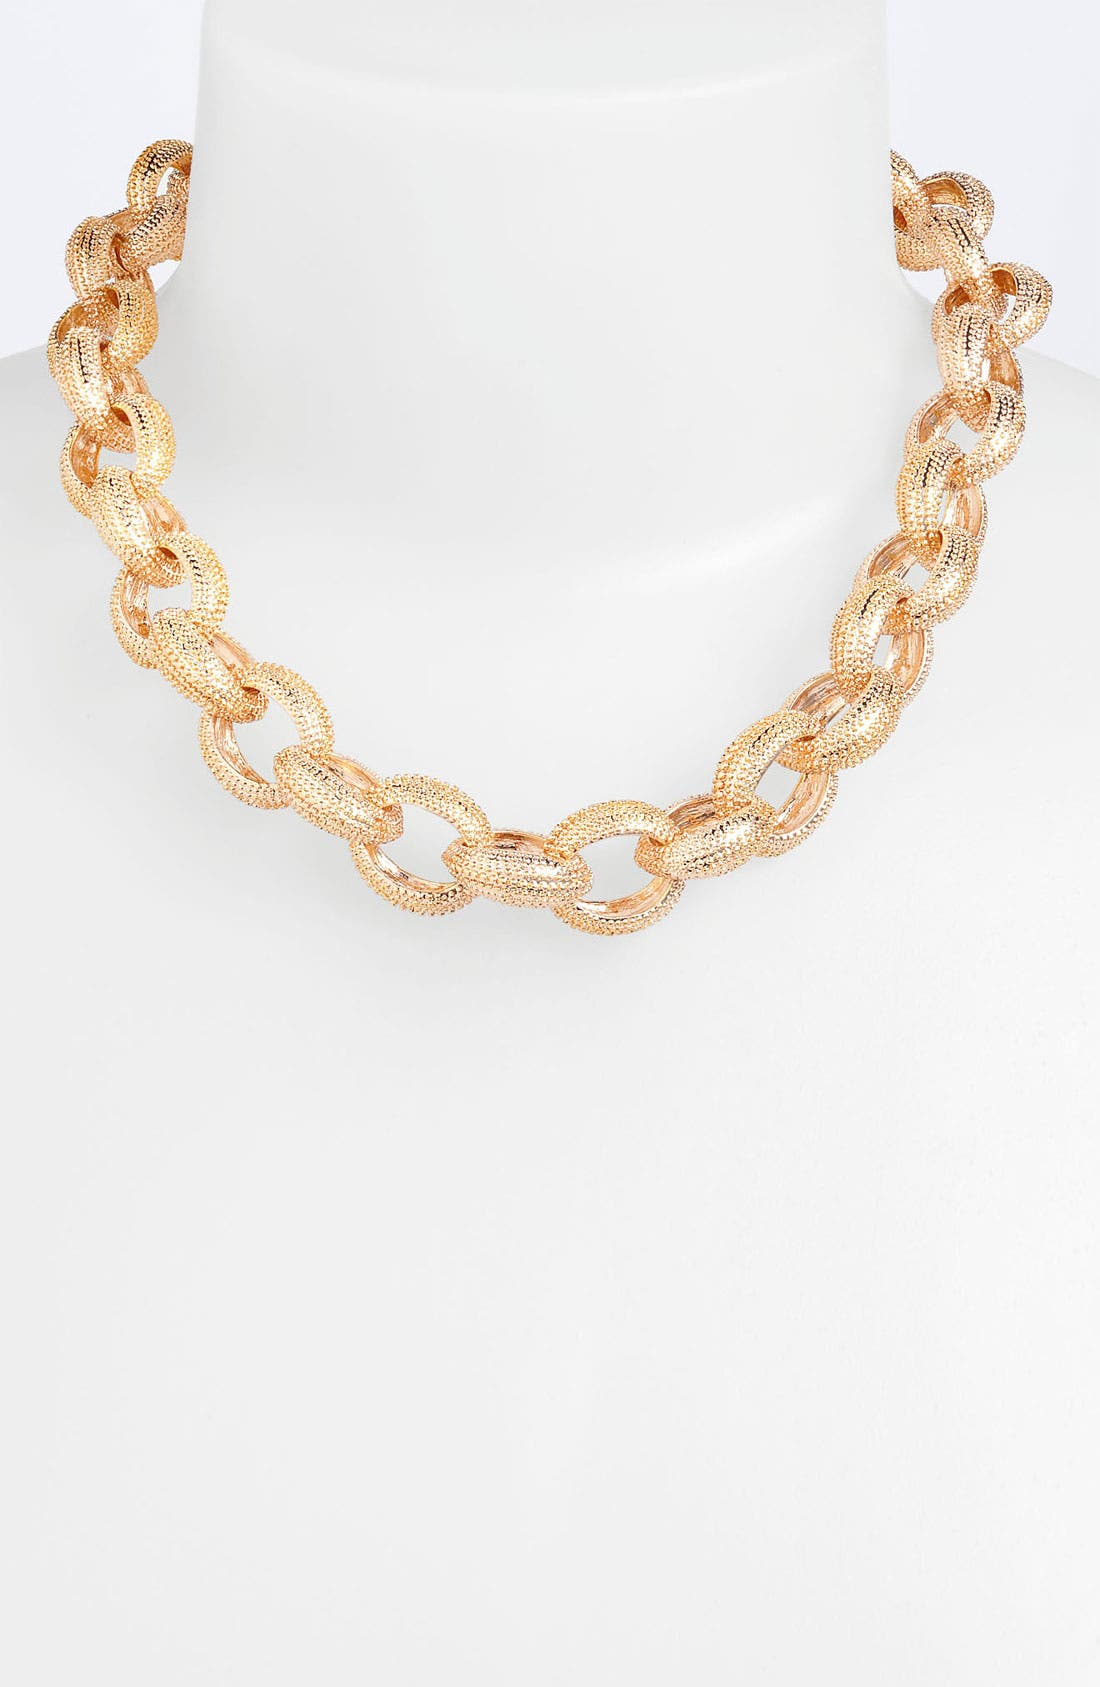 Main Image - Tasha Link Collar Necklace